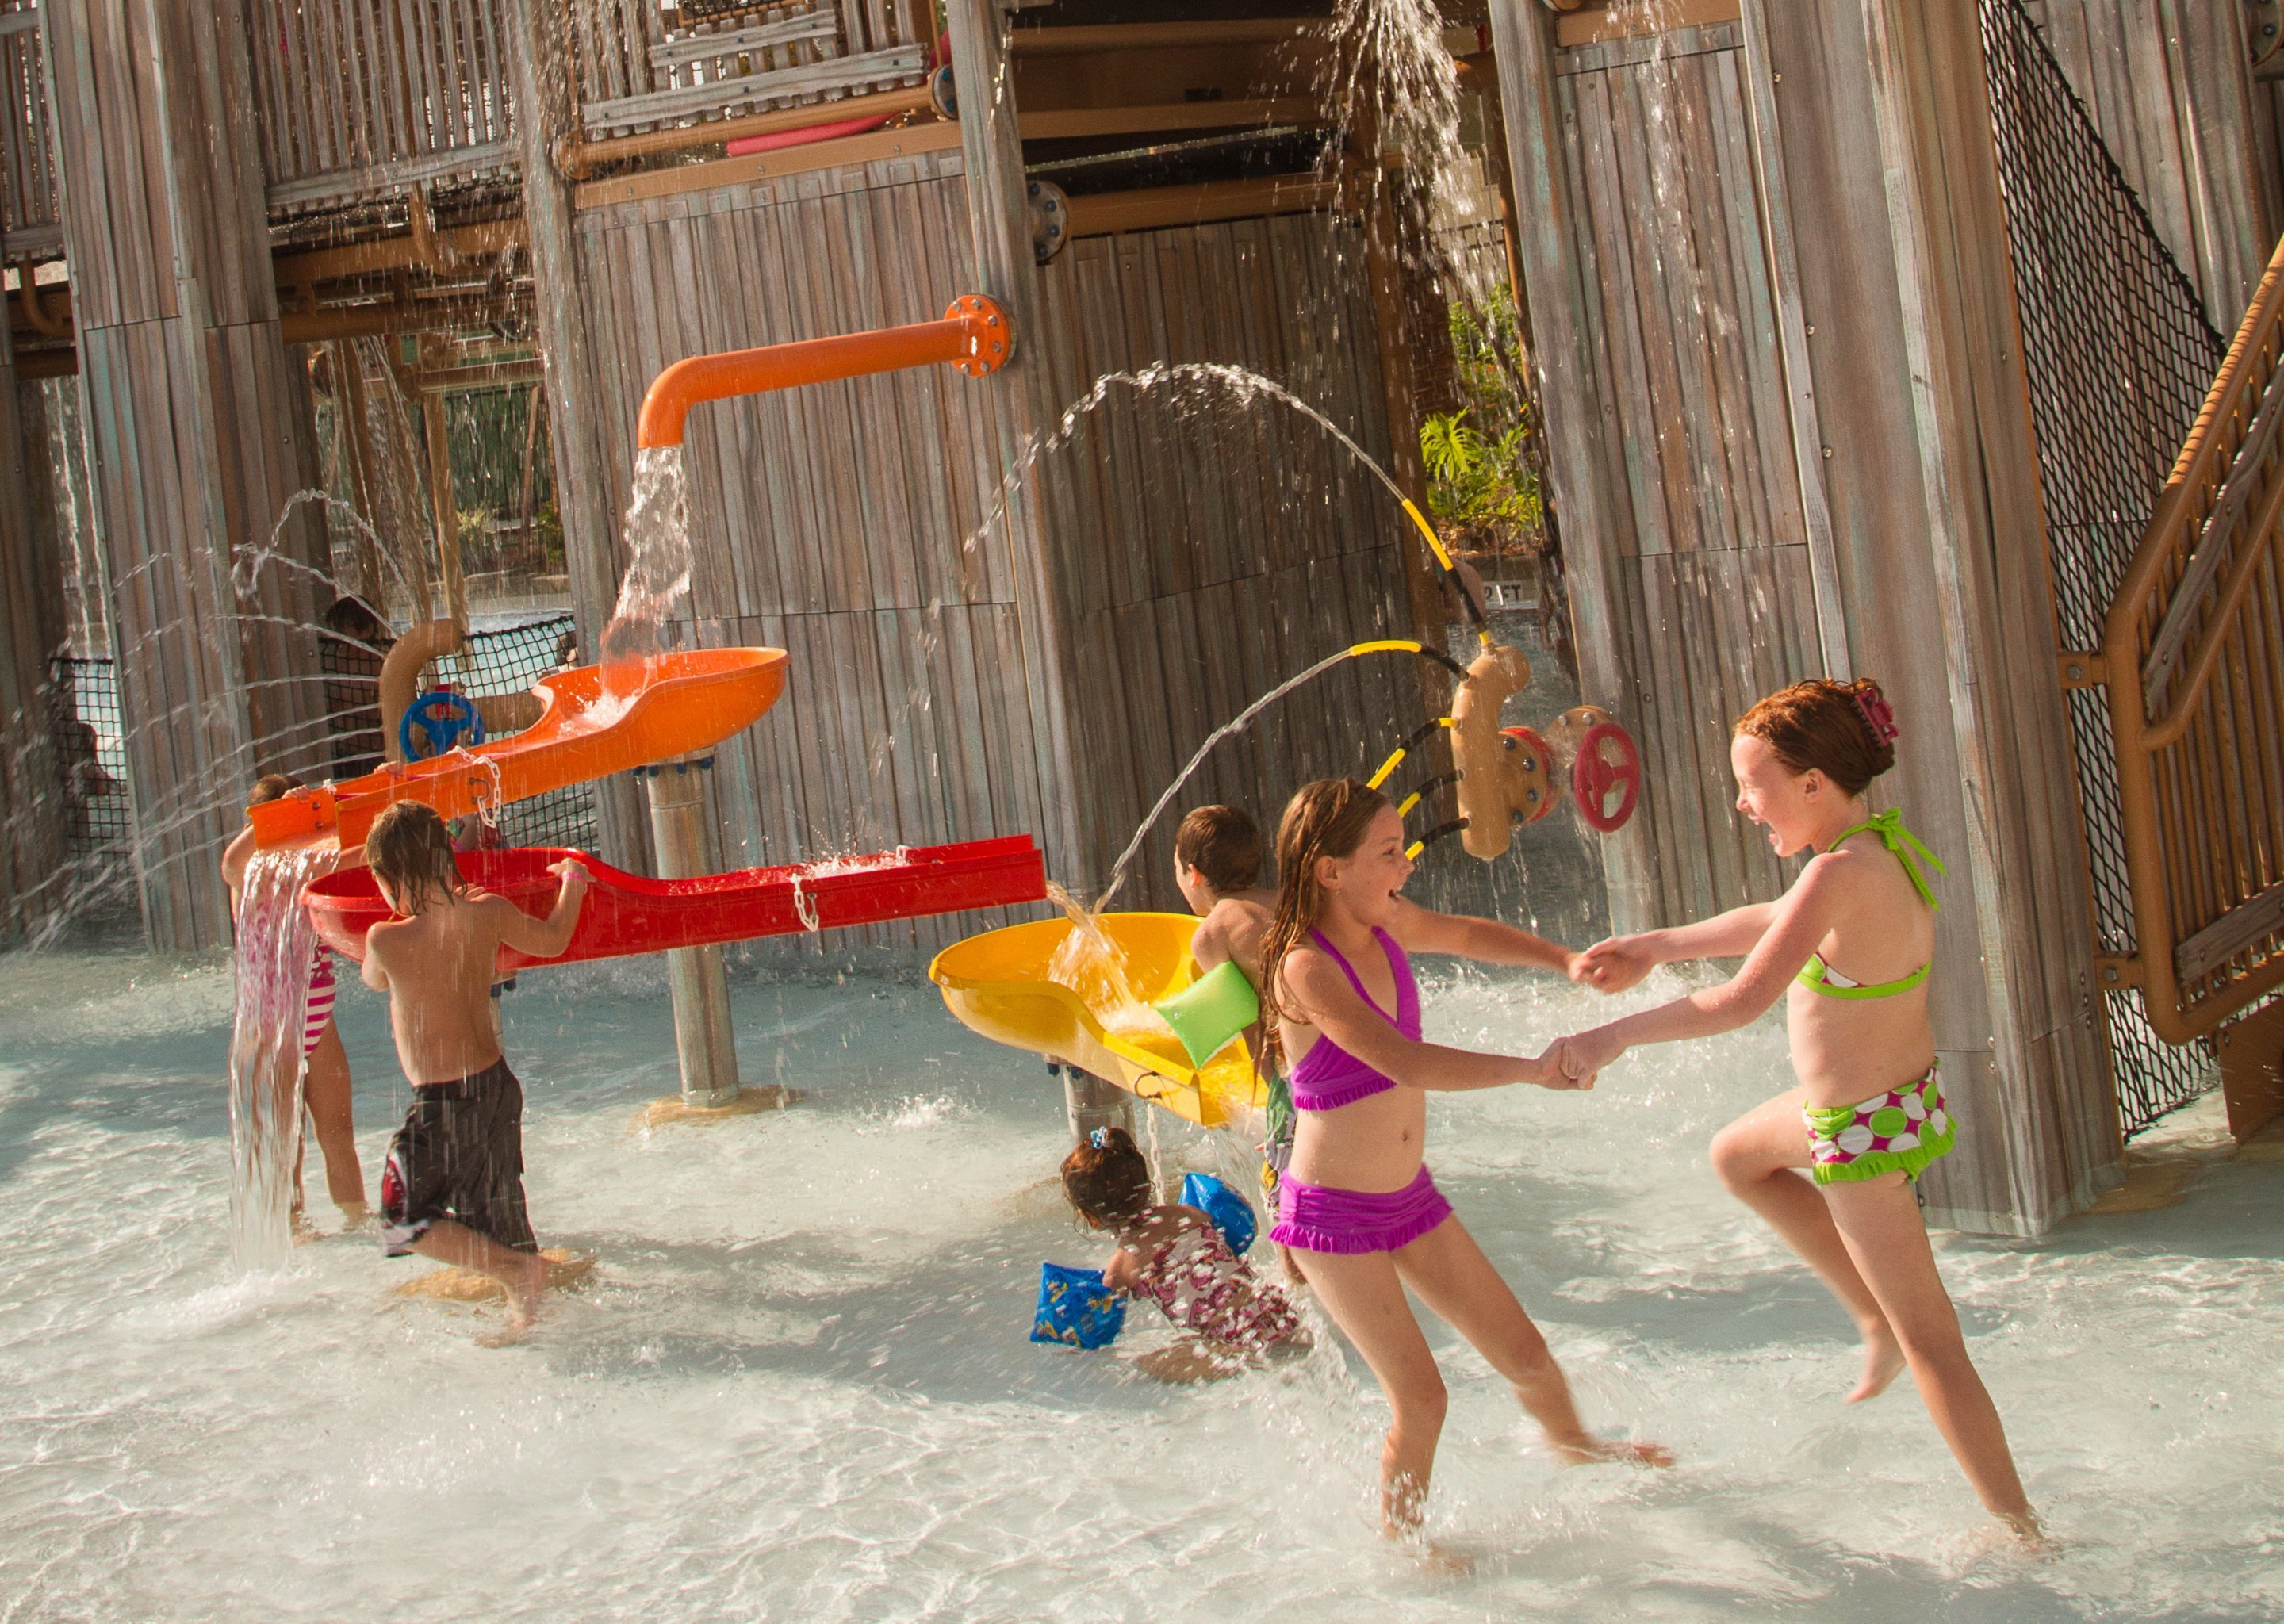 Making a Splash Without Getting Soaked <br/>Splash Parks and Dry Play Areas at Waterparks